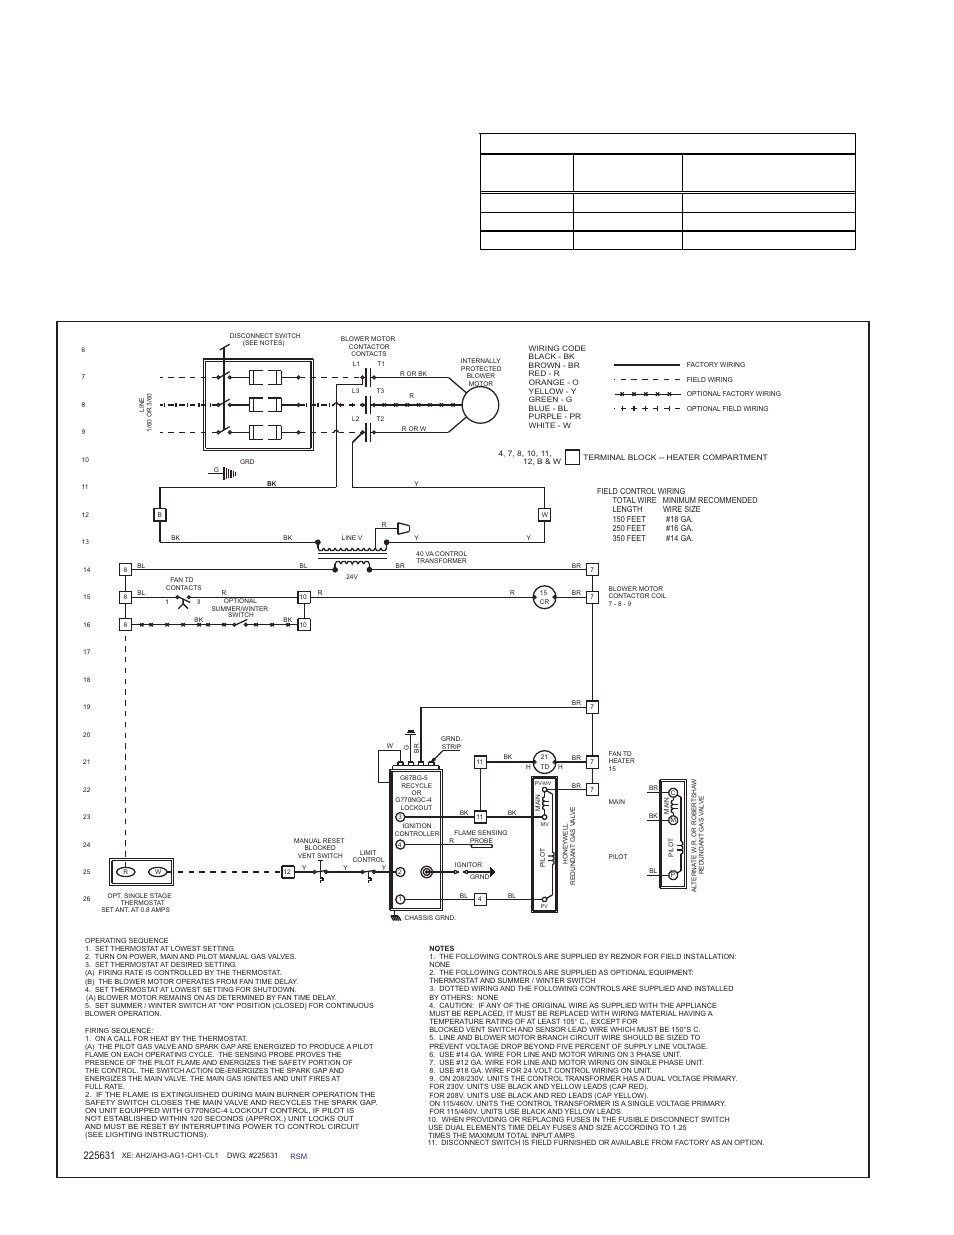 Marley Thermostat Wiring Diagram from wiringall.com